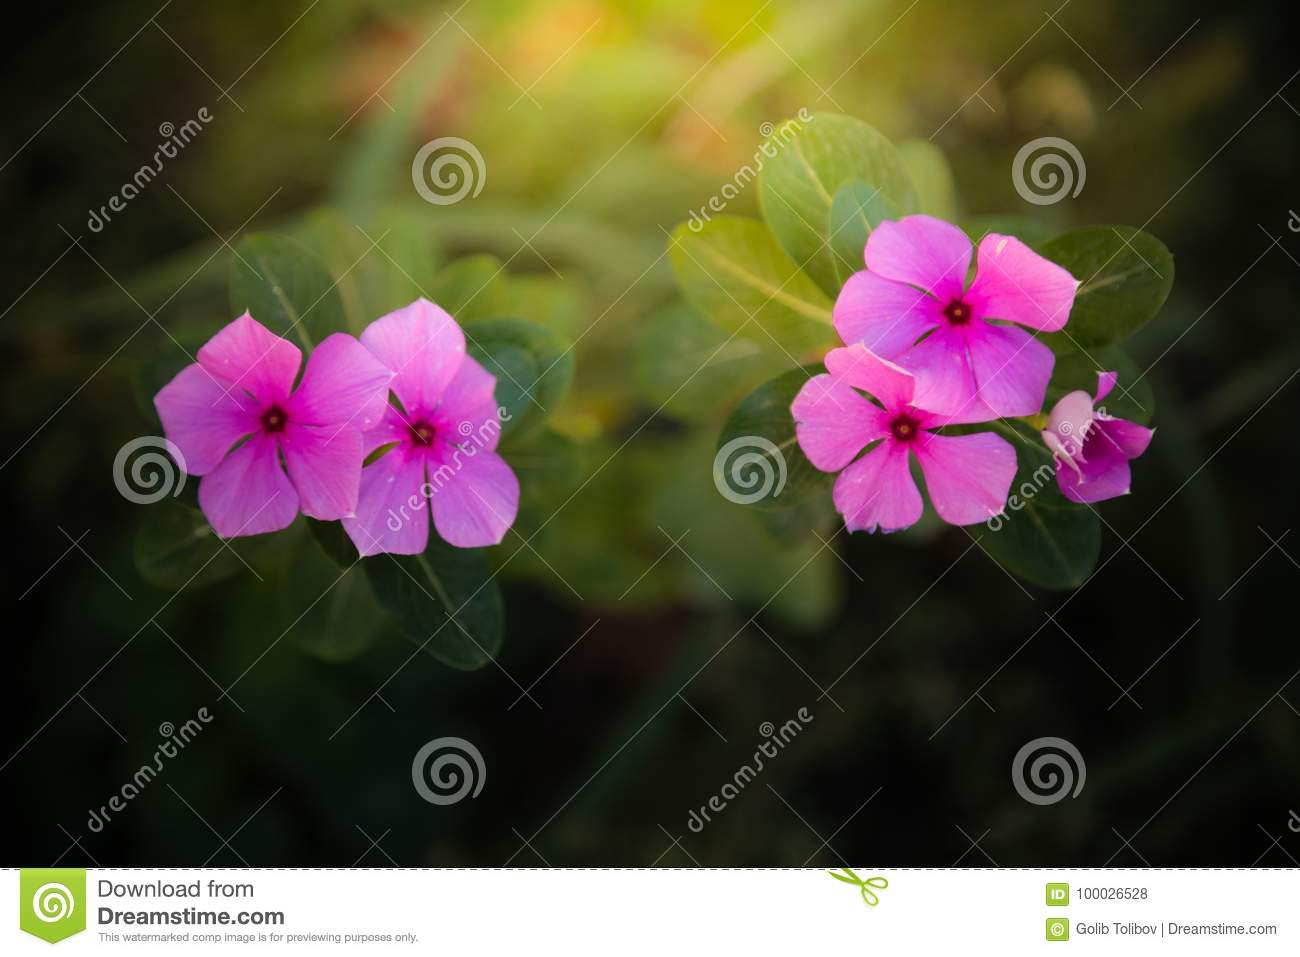 Two small pinks flowers stock photo image of horizontal 100026528 from above two small pink blooming flowers on blurred background in nature mightylinksfo